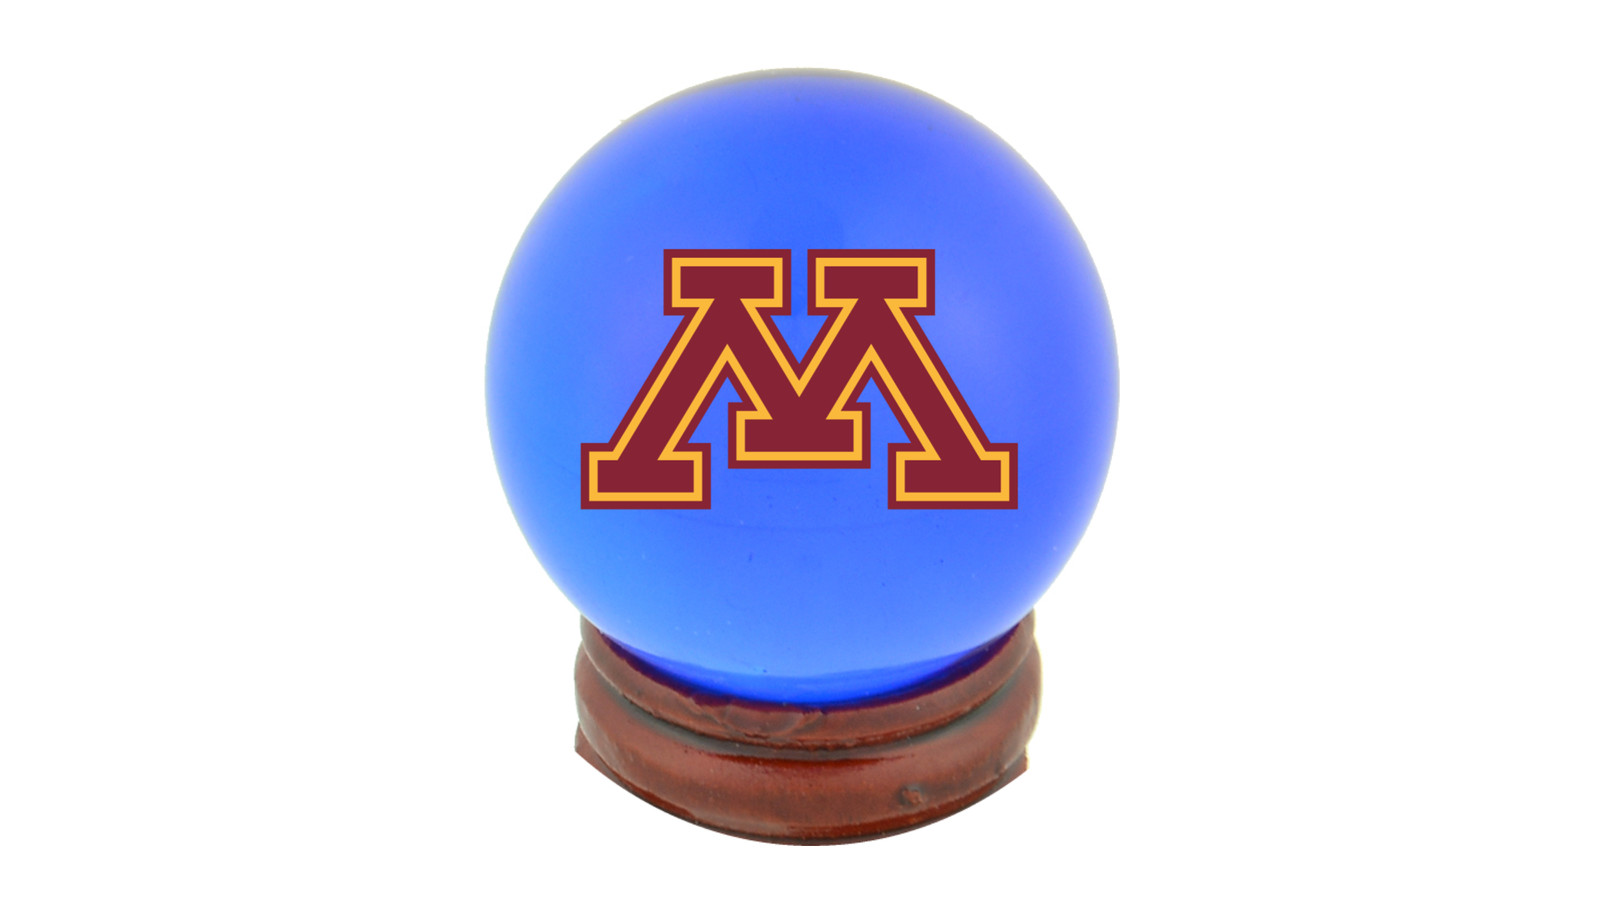 Crystal_ball_mn_only.0